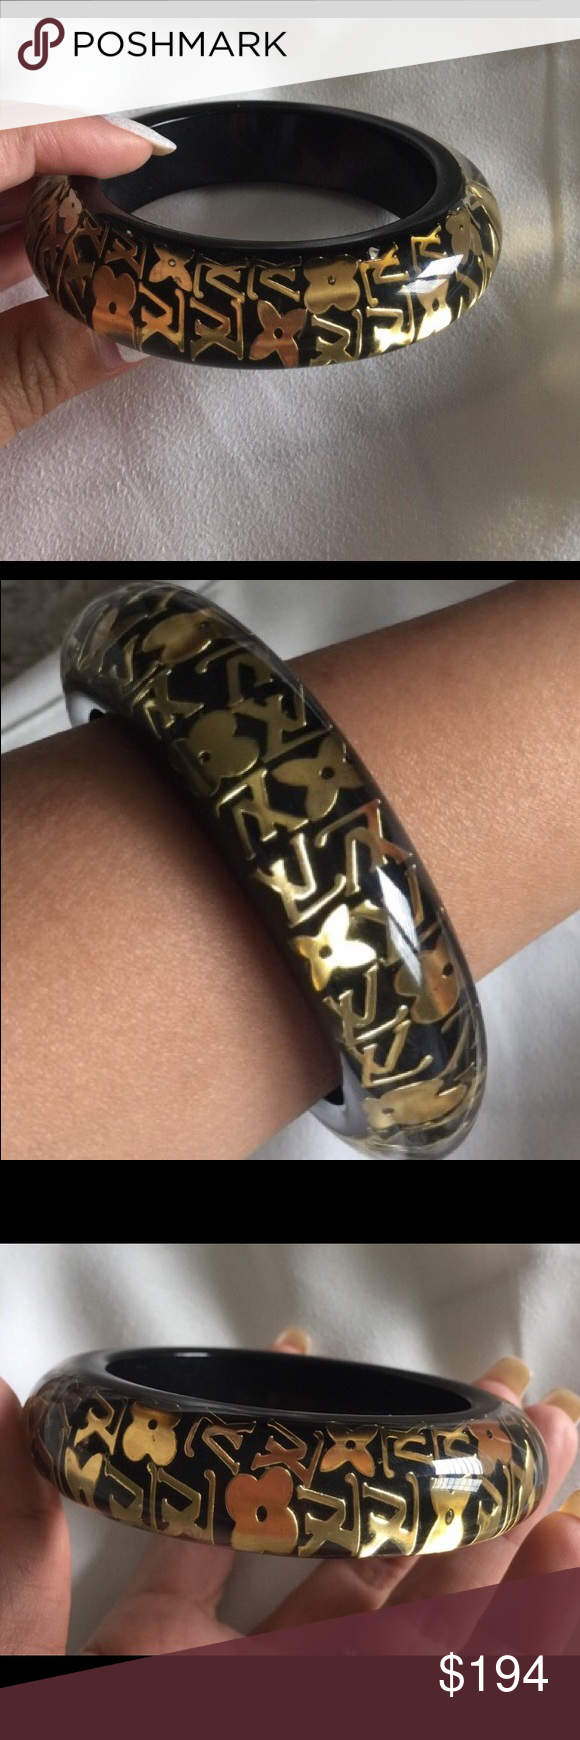 Love this lv inclusion bracelet in black u gold louis vuitton my